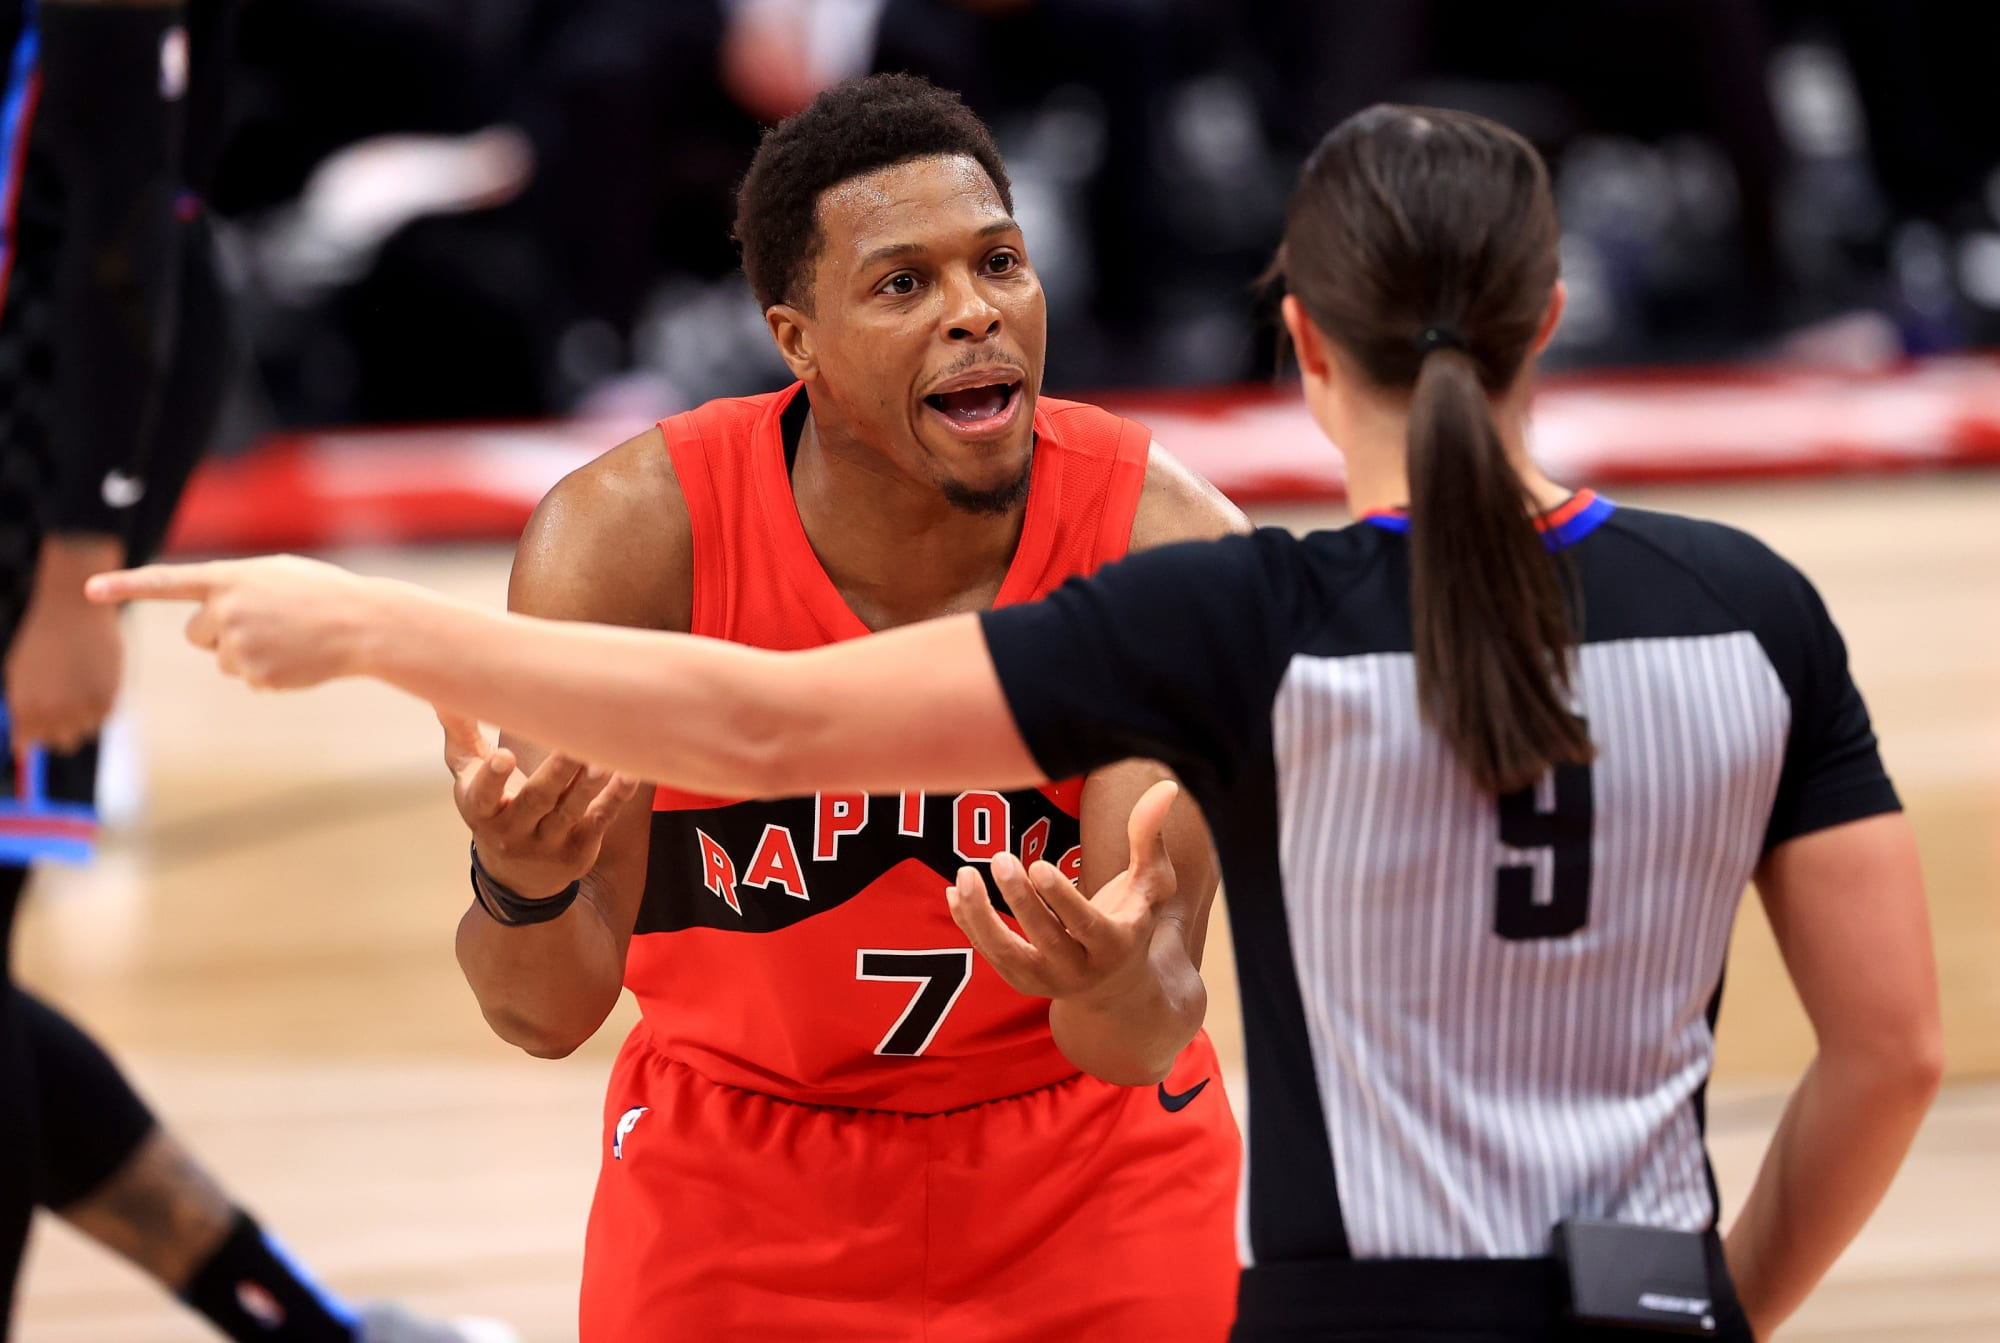 Raptors: Kyle Lowry tries to shut down trade rumors on Instagram